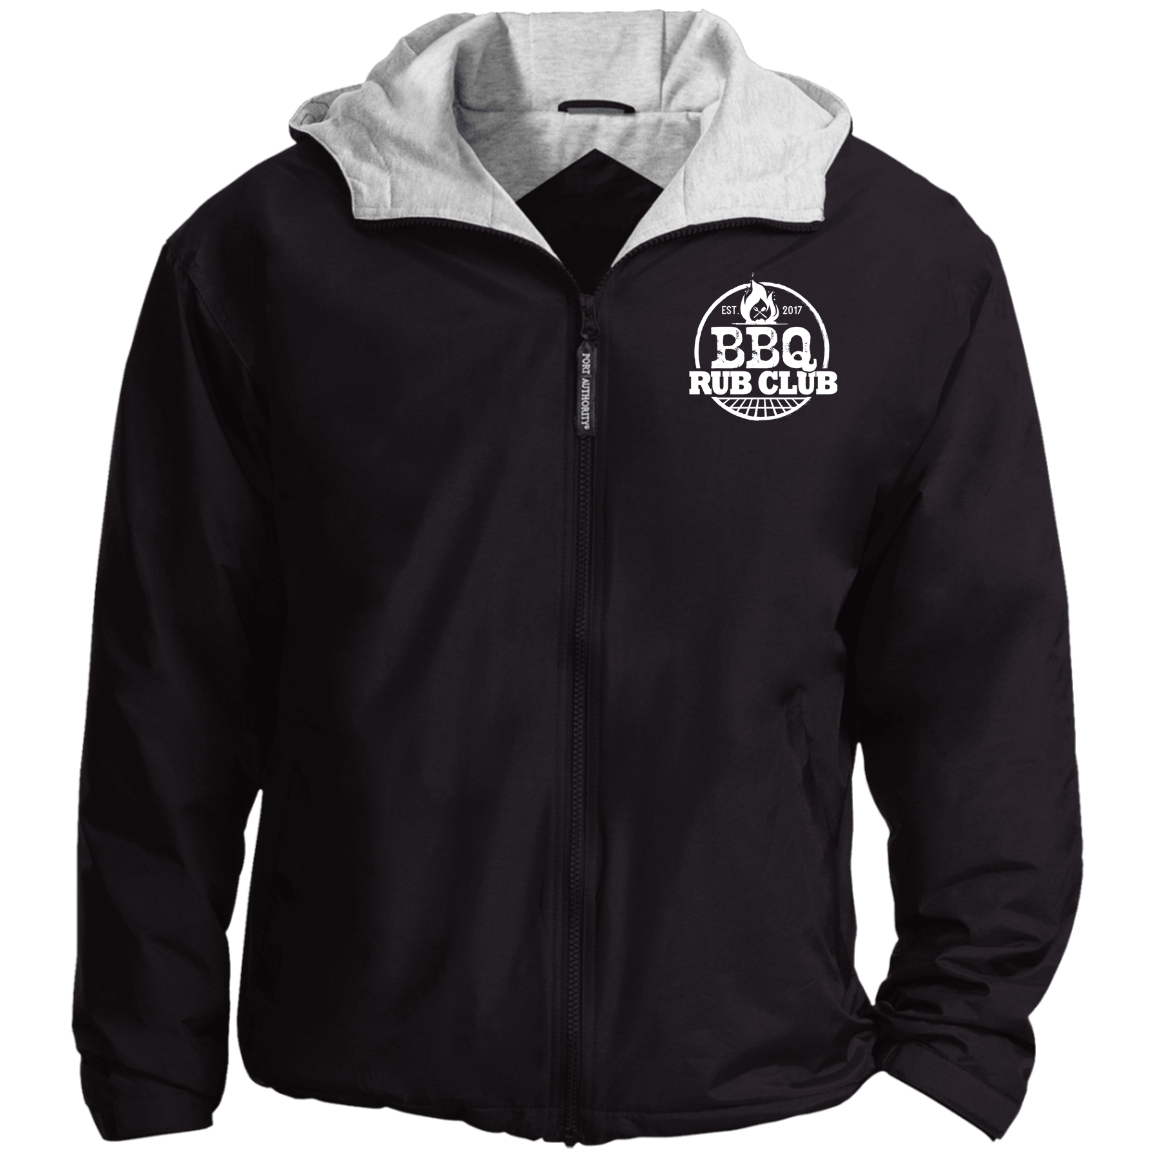 BBQ Rub Club Team Jacket